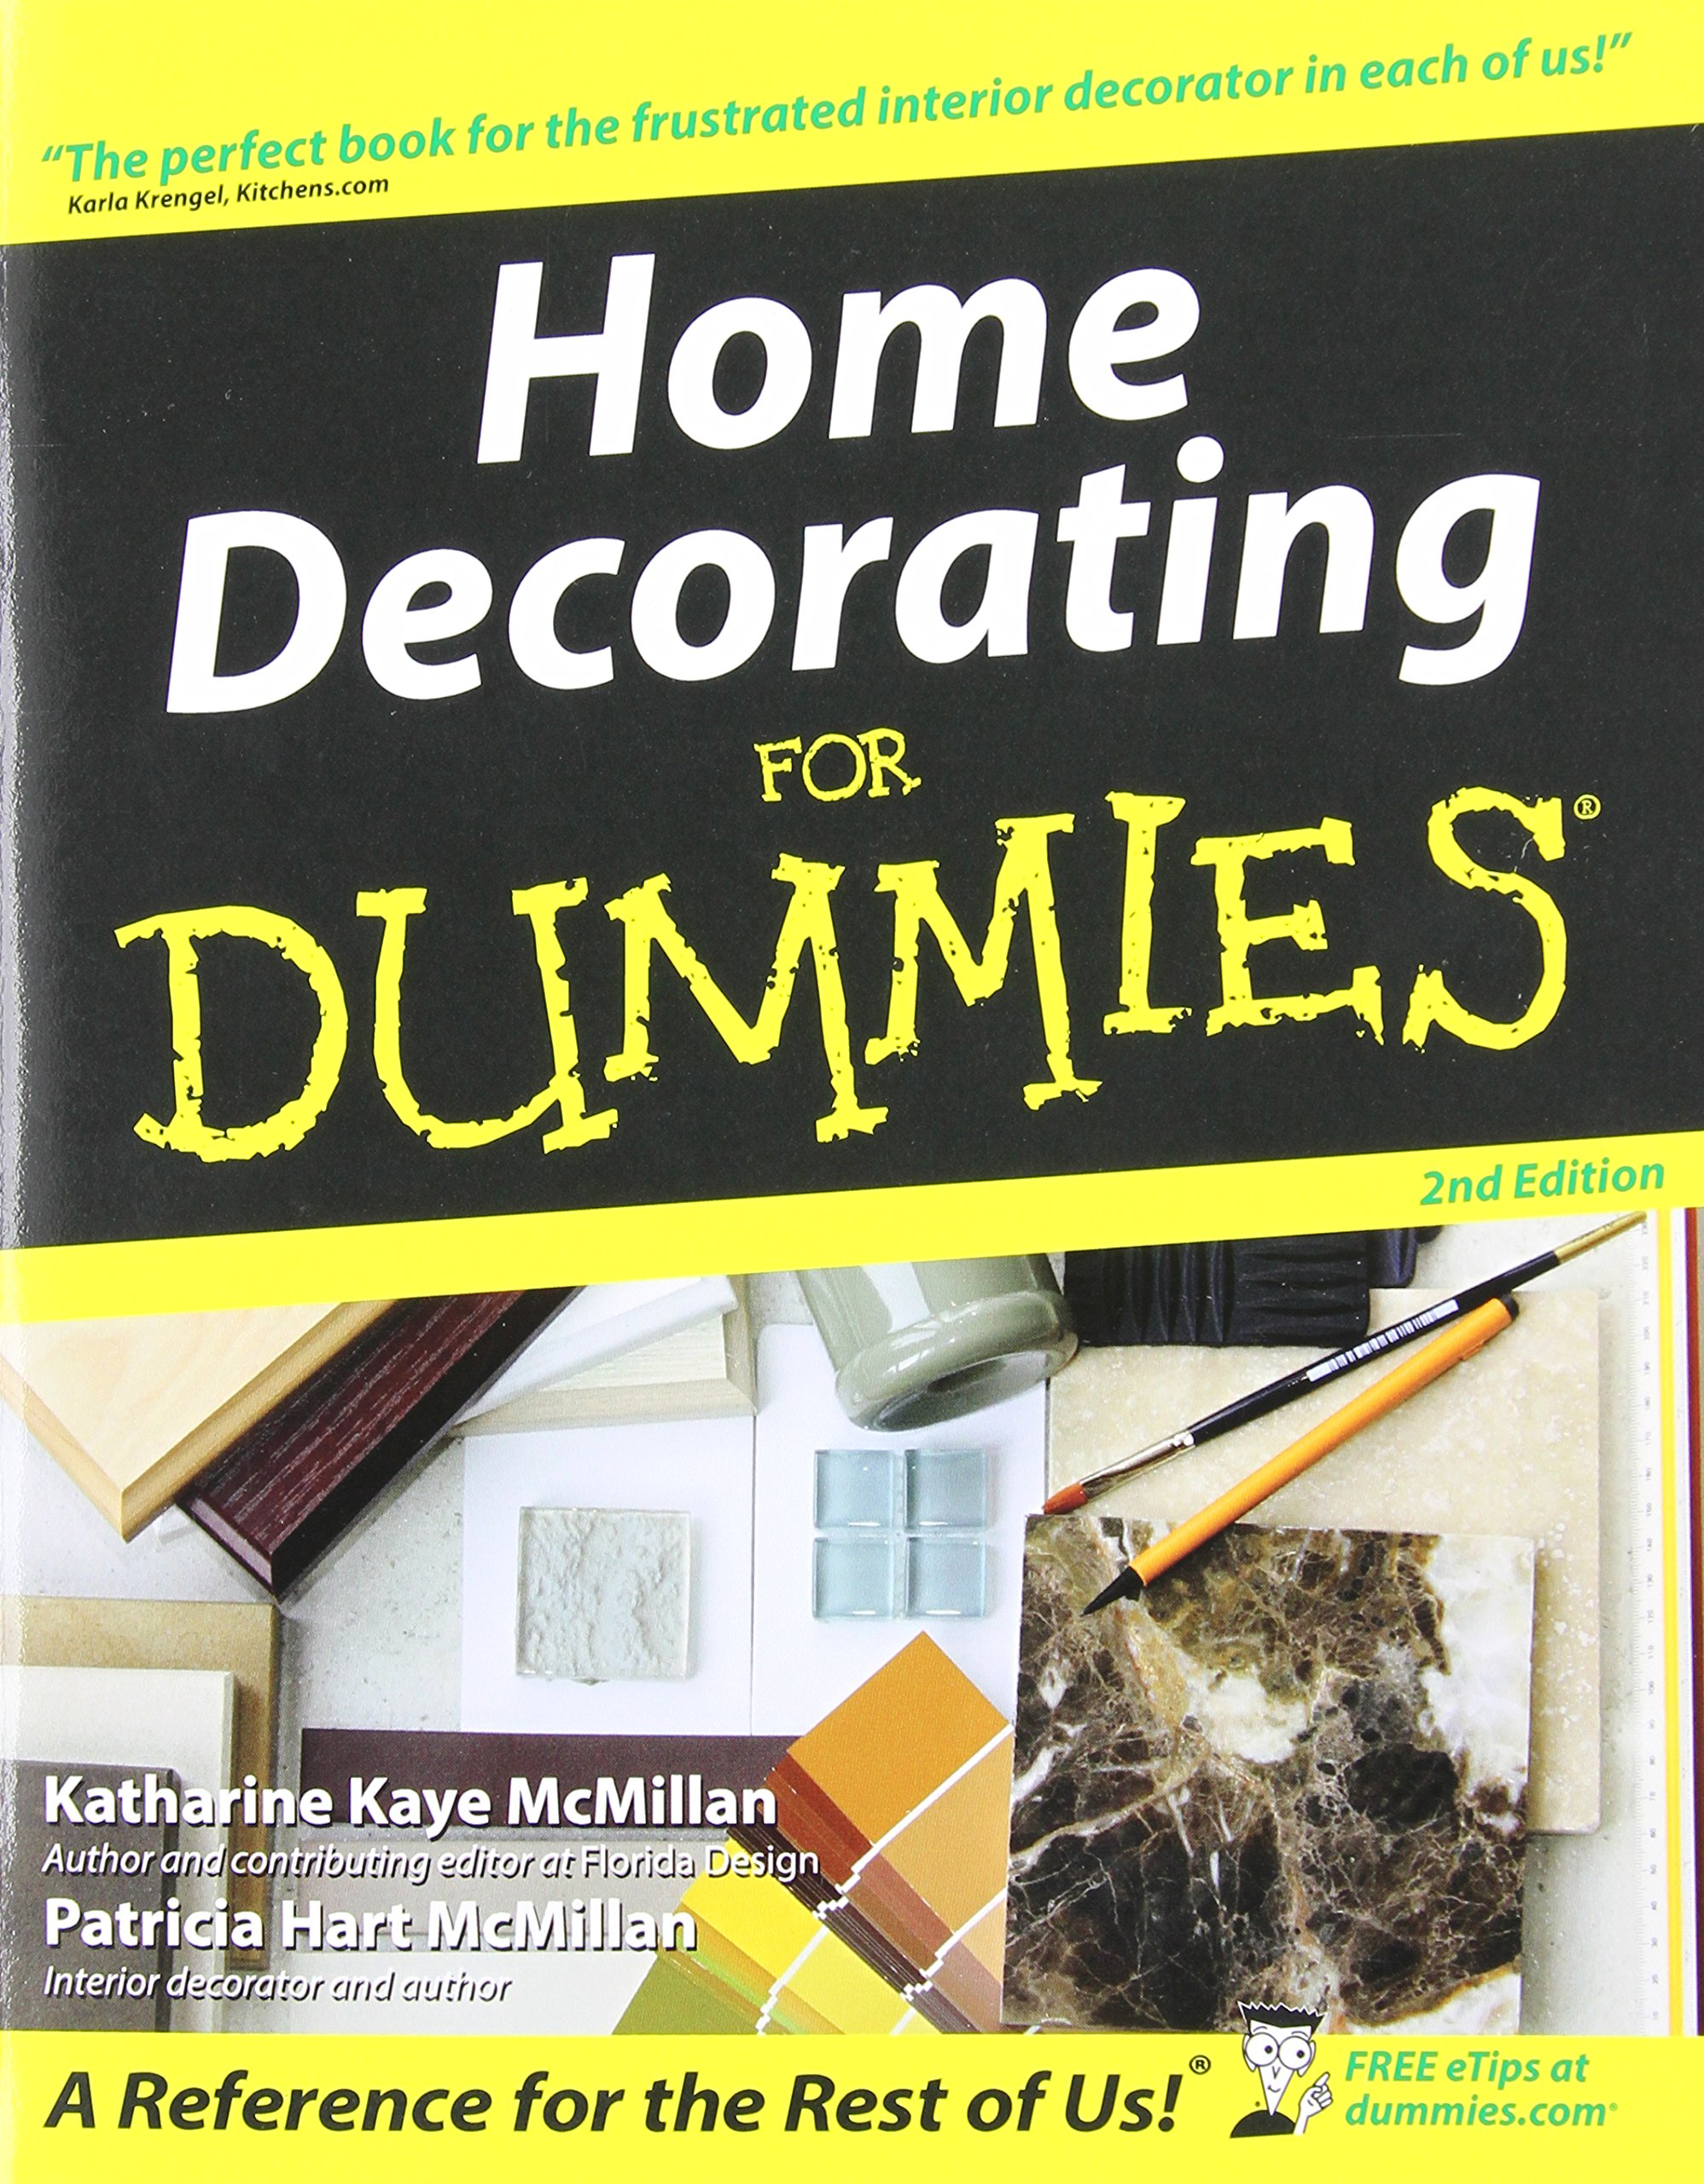 Home Decorating For Dummies: Katharine Kaye McMillan, Patricia Hart  McMillan: 0785555870444: Amazon.com: Books